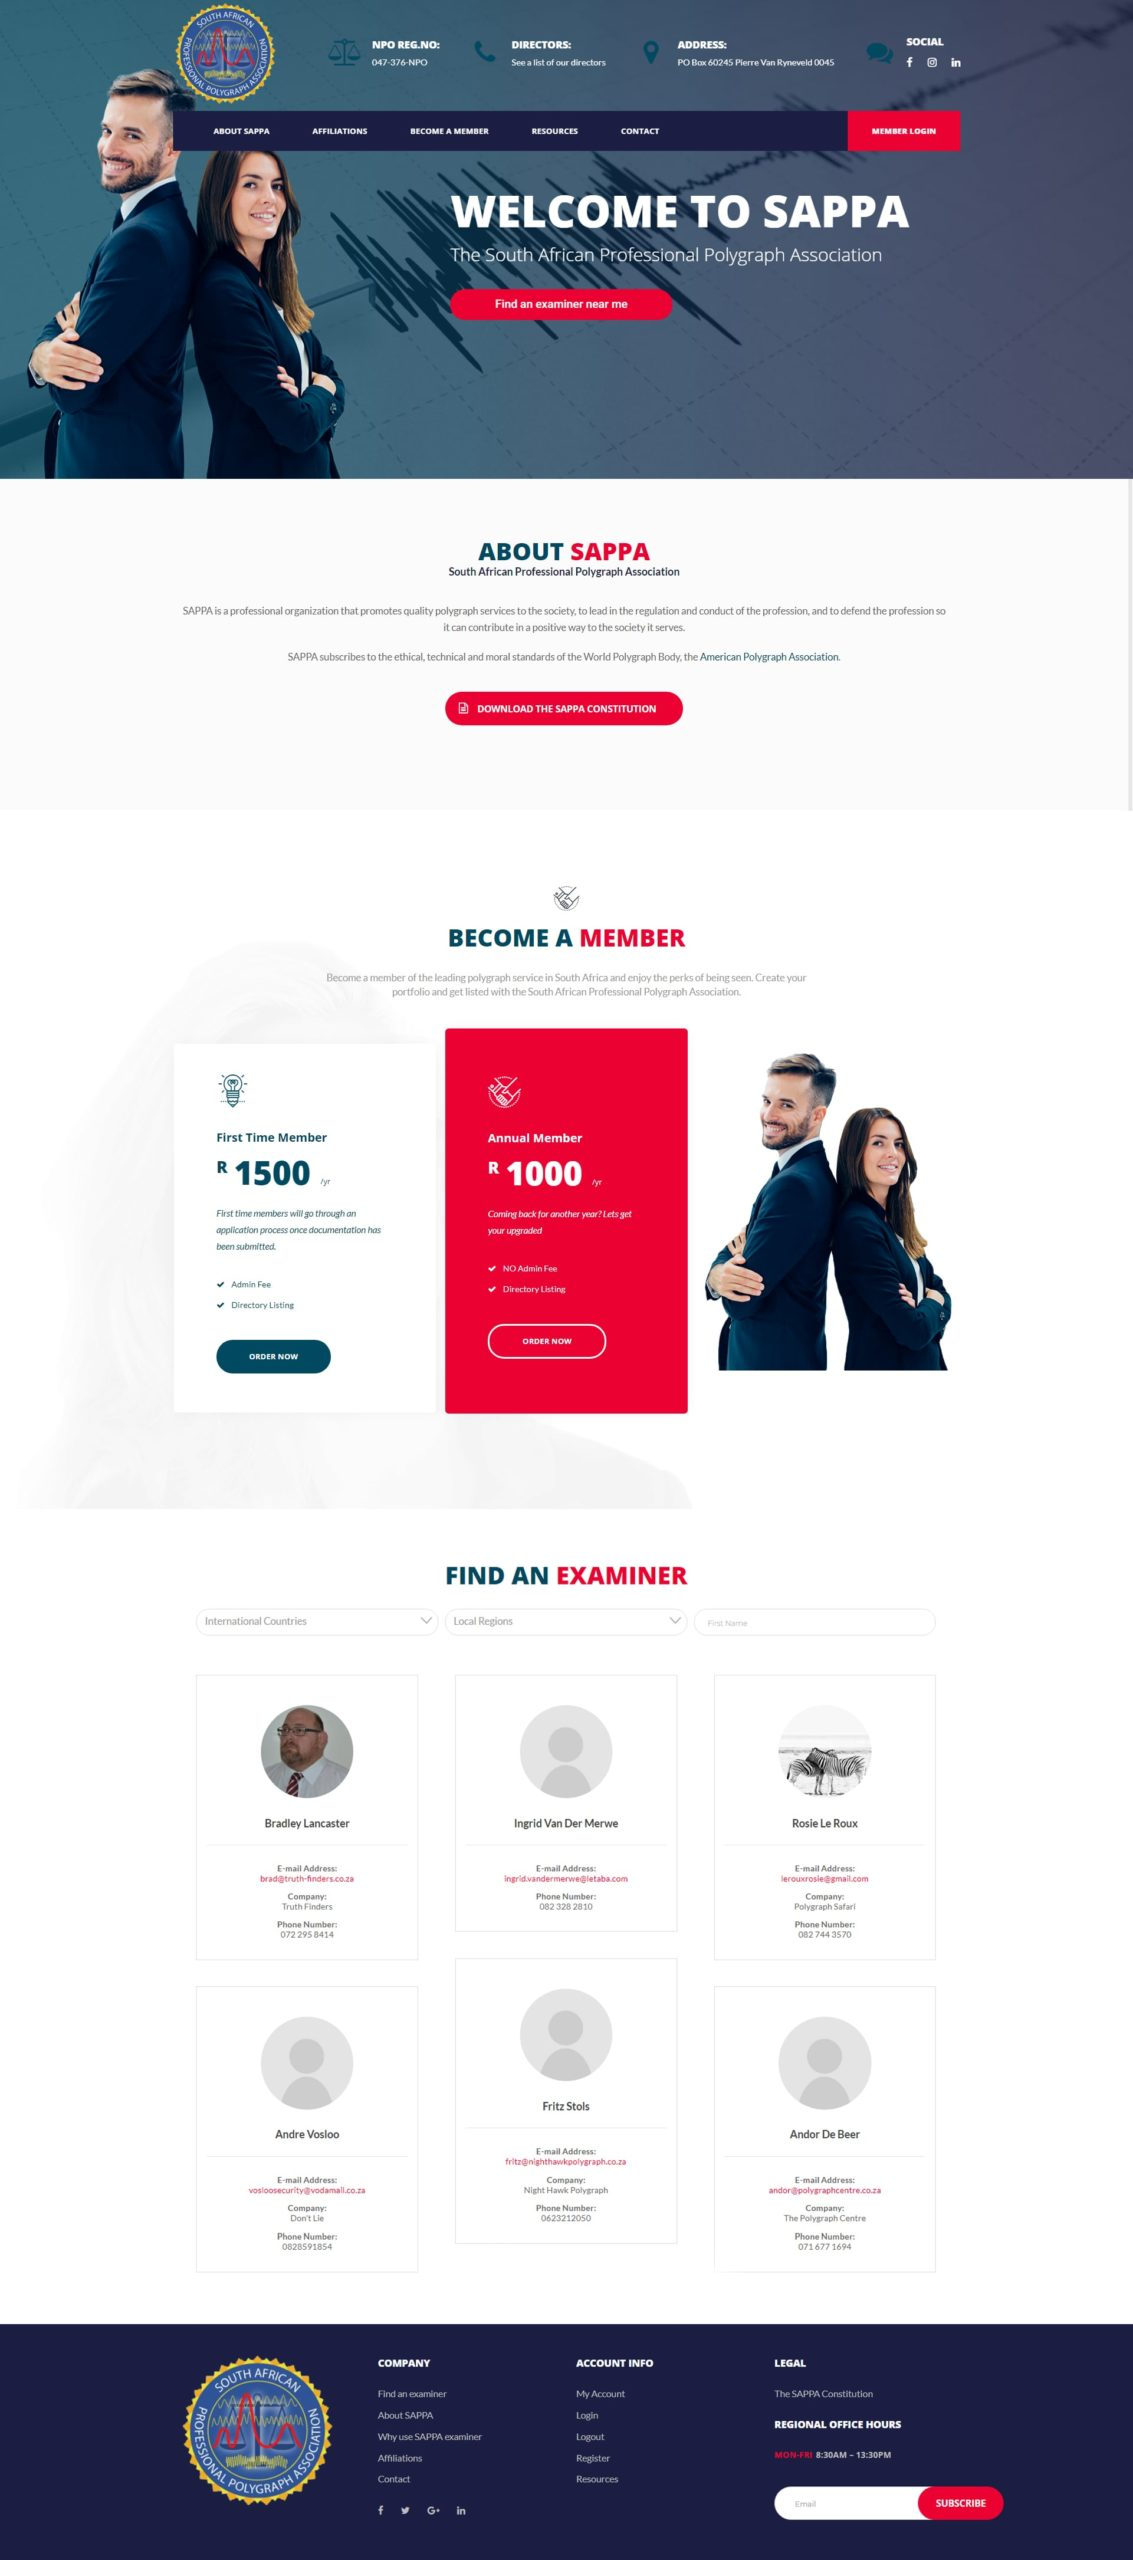 South-African-Polygraph-Professionals-Association-Website-Mockup